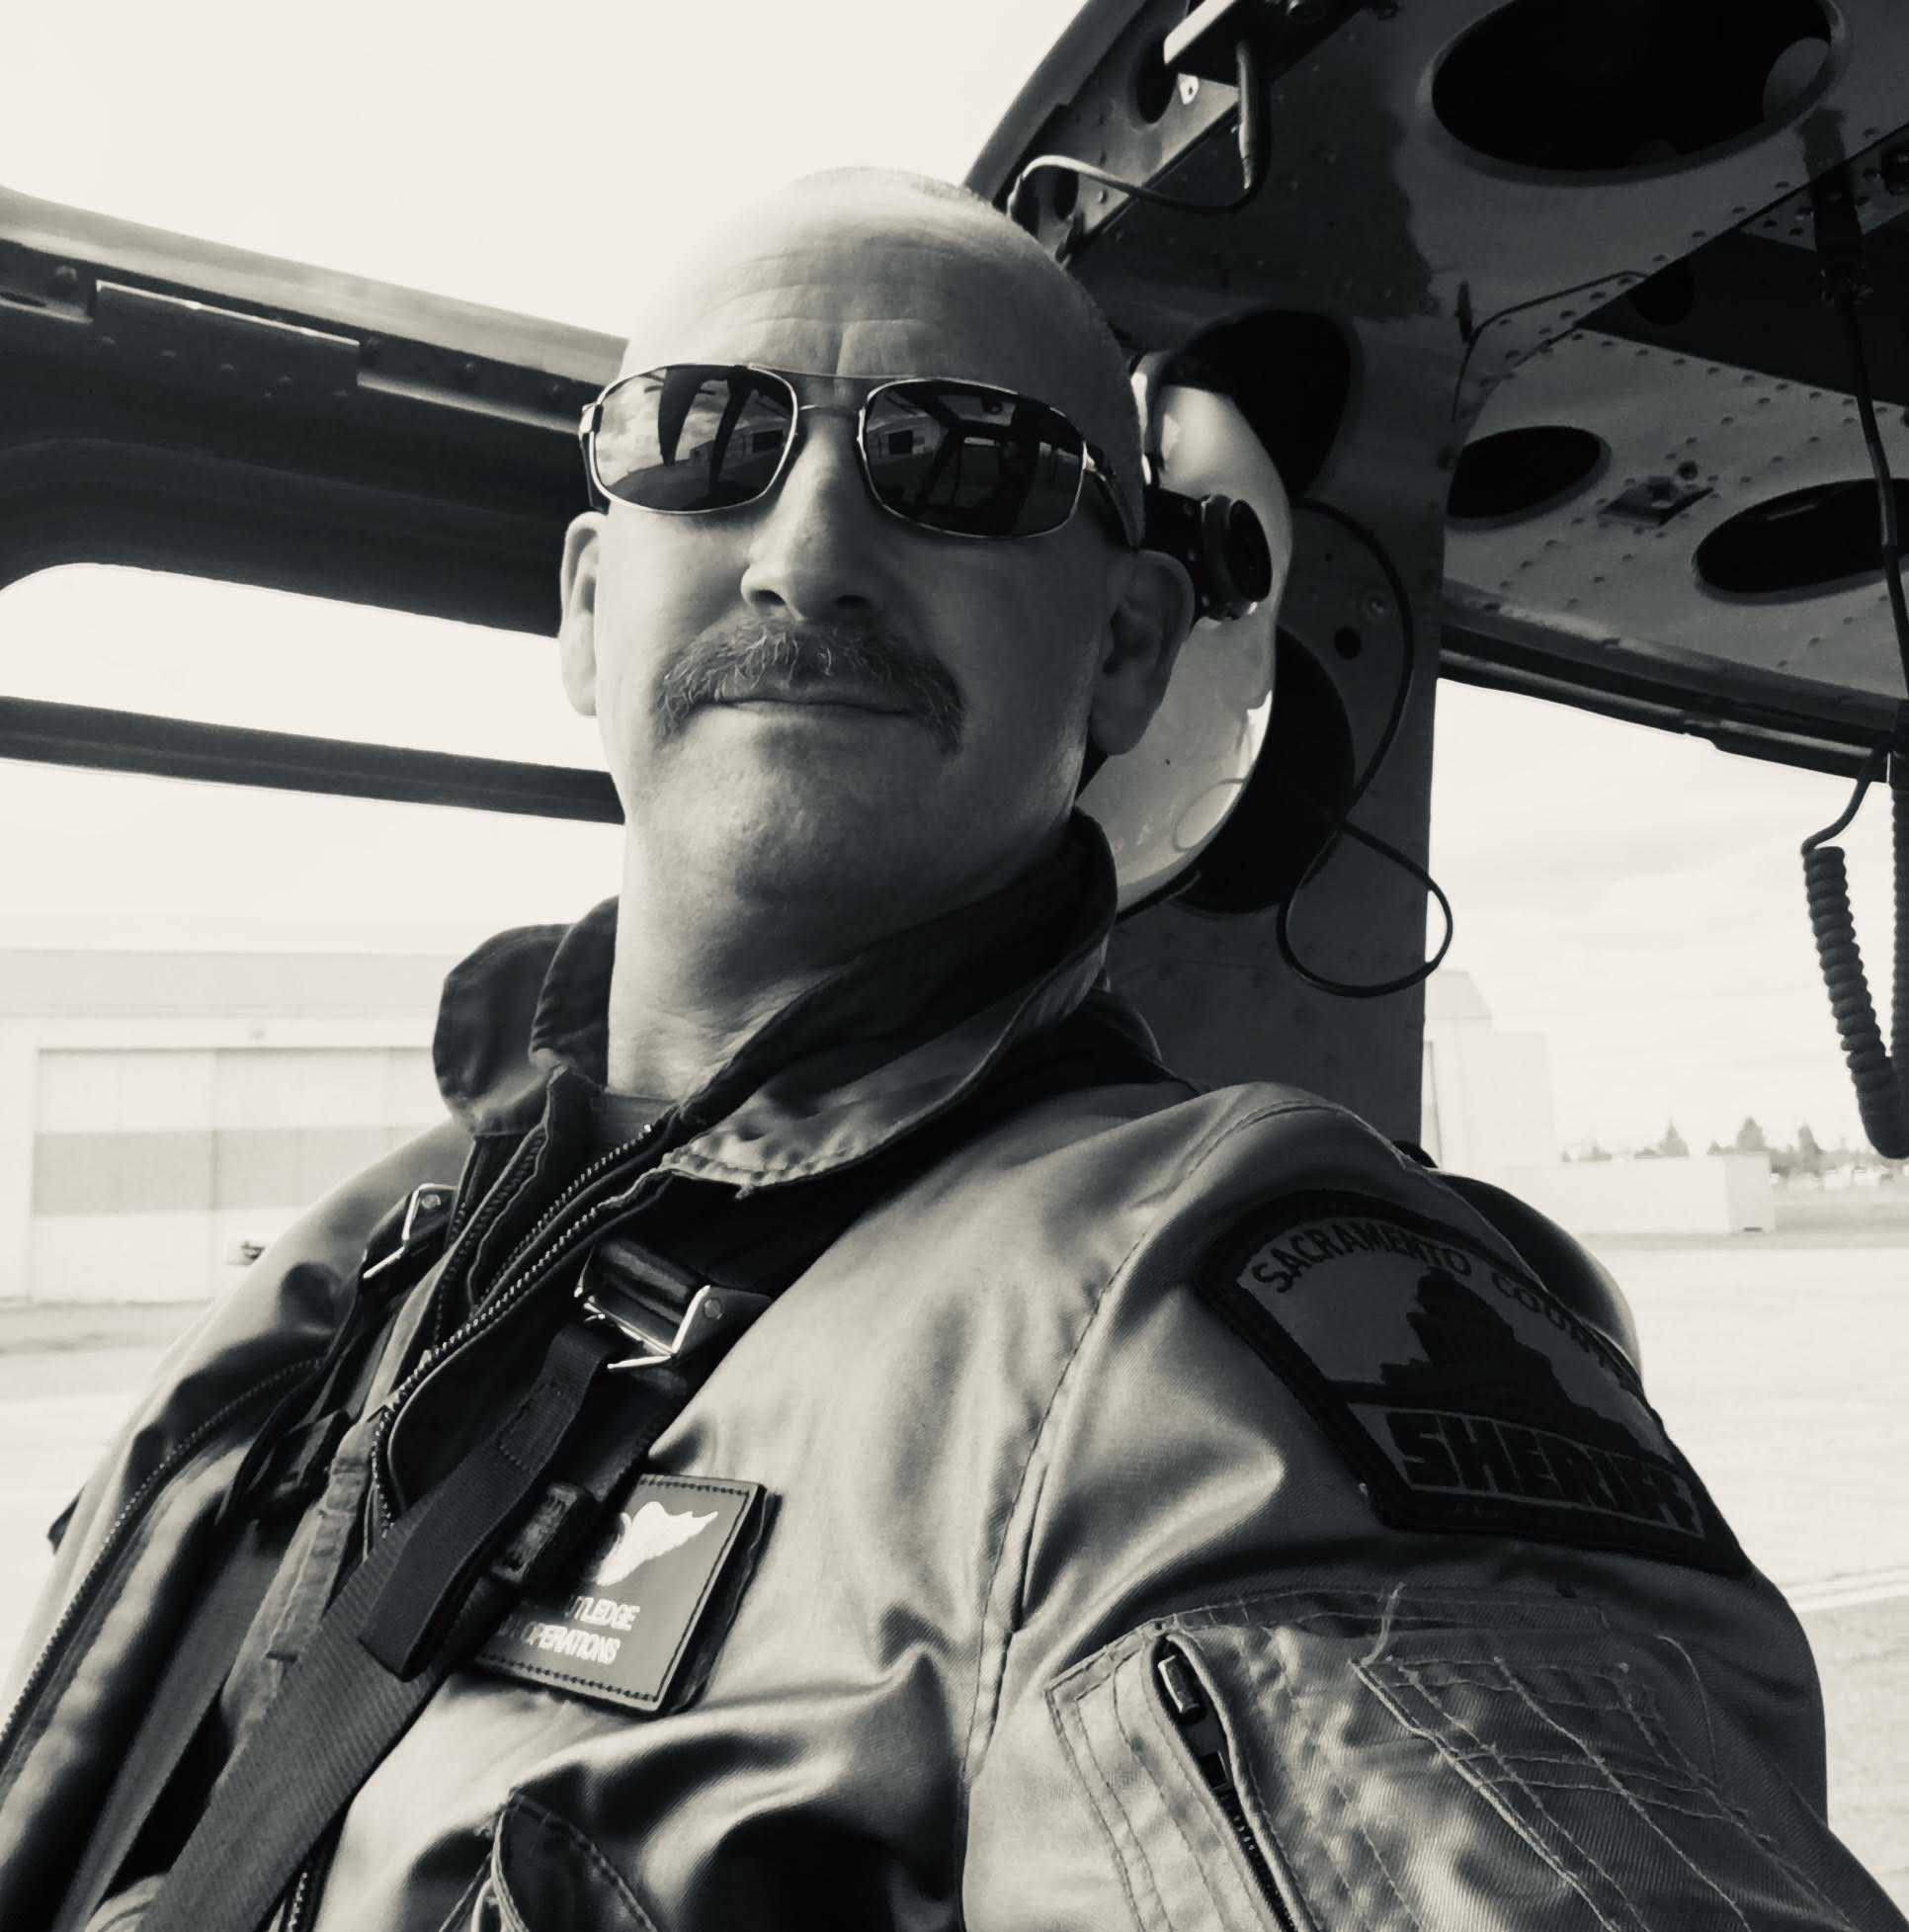 Season 3 Episode 8: Brian Rutledge, Sacramento County Sheriff's Office Aviation Unit  Brian Rutledge  A powerful episode as we talk with Sheriff Brian Rutledge. Deputy Rutledge has been in law enforcement for nearly 30 years and has been with the Sacramento County Sheriff's Office Aviation Unit for the last 15. He has a plethora of knowledge and experience with various aircraft. We talk about career progression, attitude, mindset, the job itself and most of all, what it means to be apart of the Thin Blue Line. We dedicate this episode to the late Tara O'Sullivan who lost her life in the line of duty Wednesday, June 19, 2019.